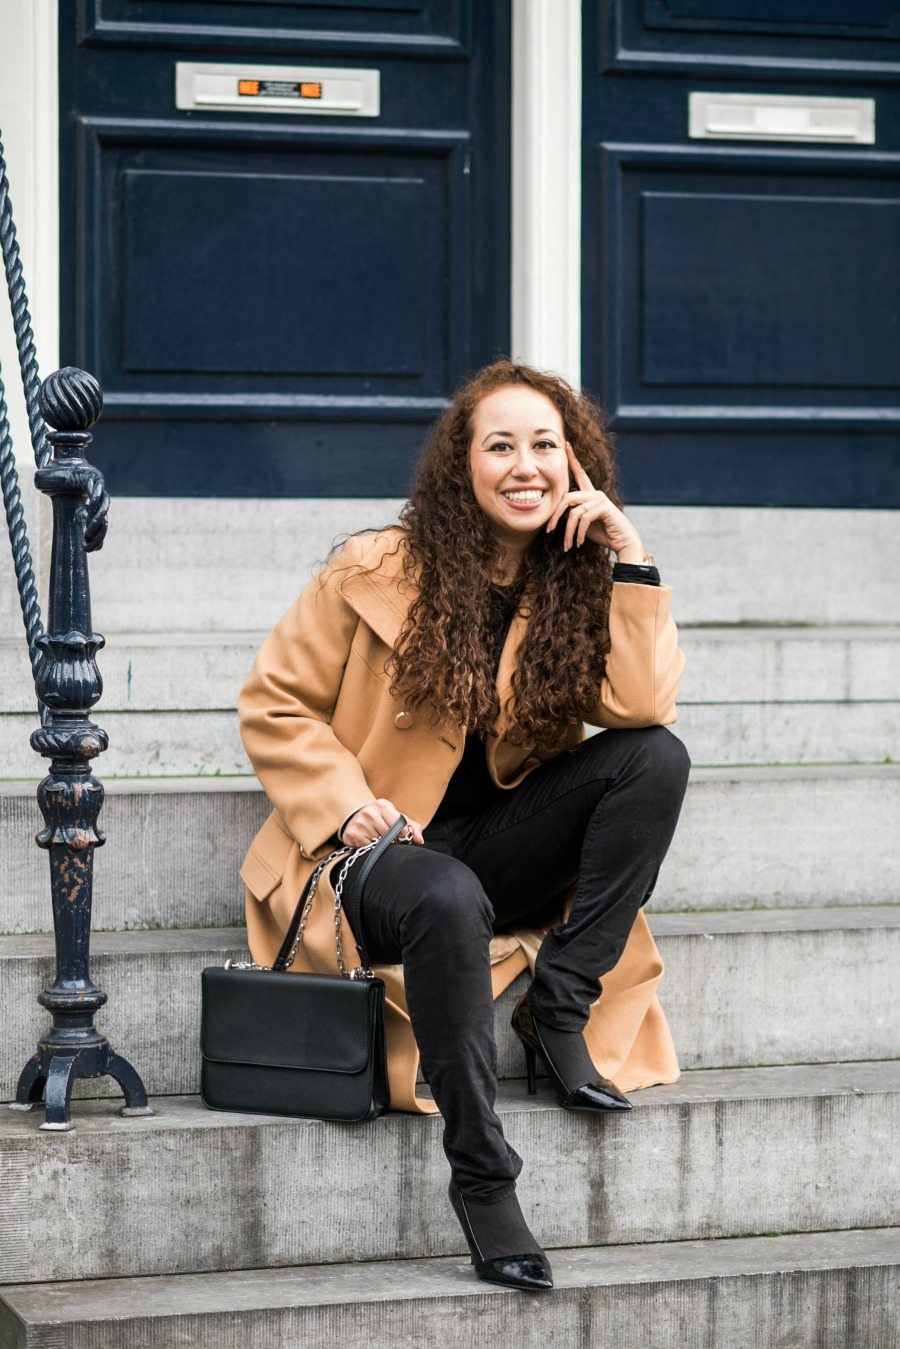 Cozy camel colored wool coat // A Week Of Modern & Cozy Fall Outfits With Lifestyle Blogger & Life Coach Hailey Noa on The Good Trade